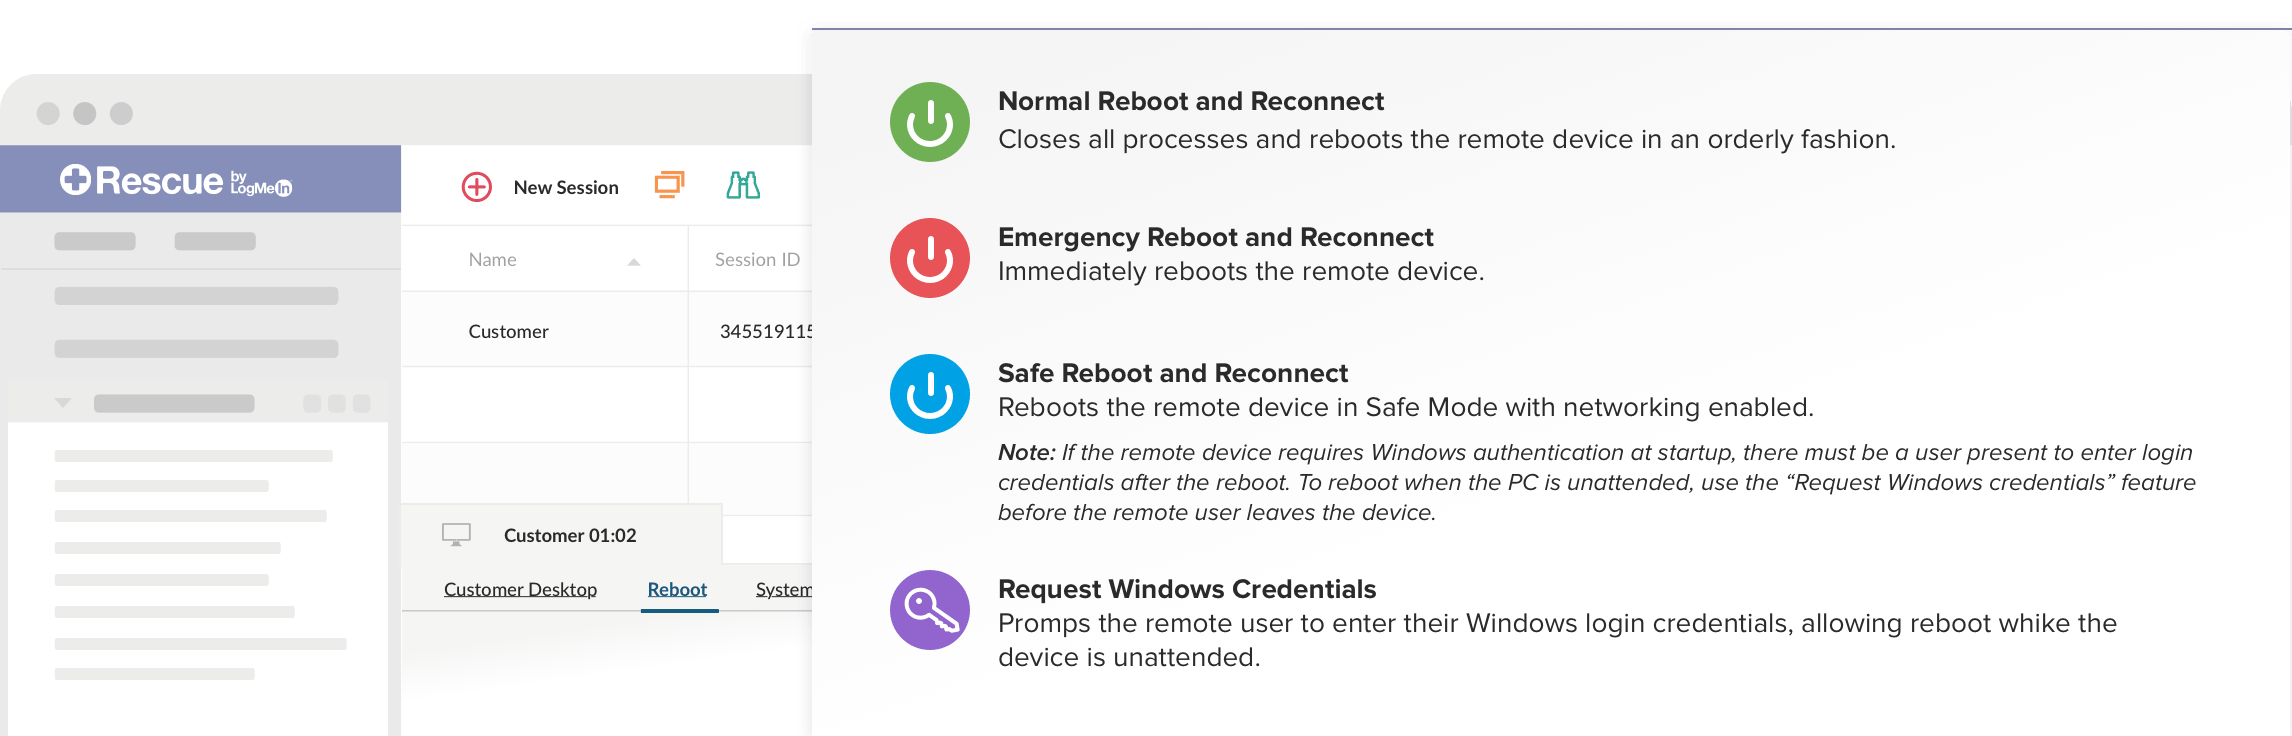 Reboot and reconnect options for remote support session